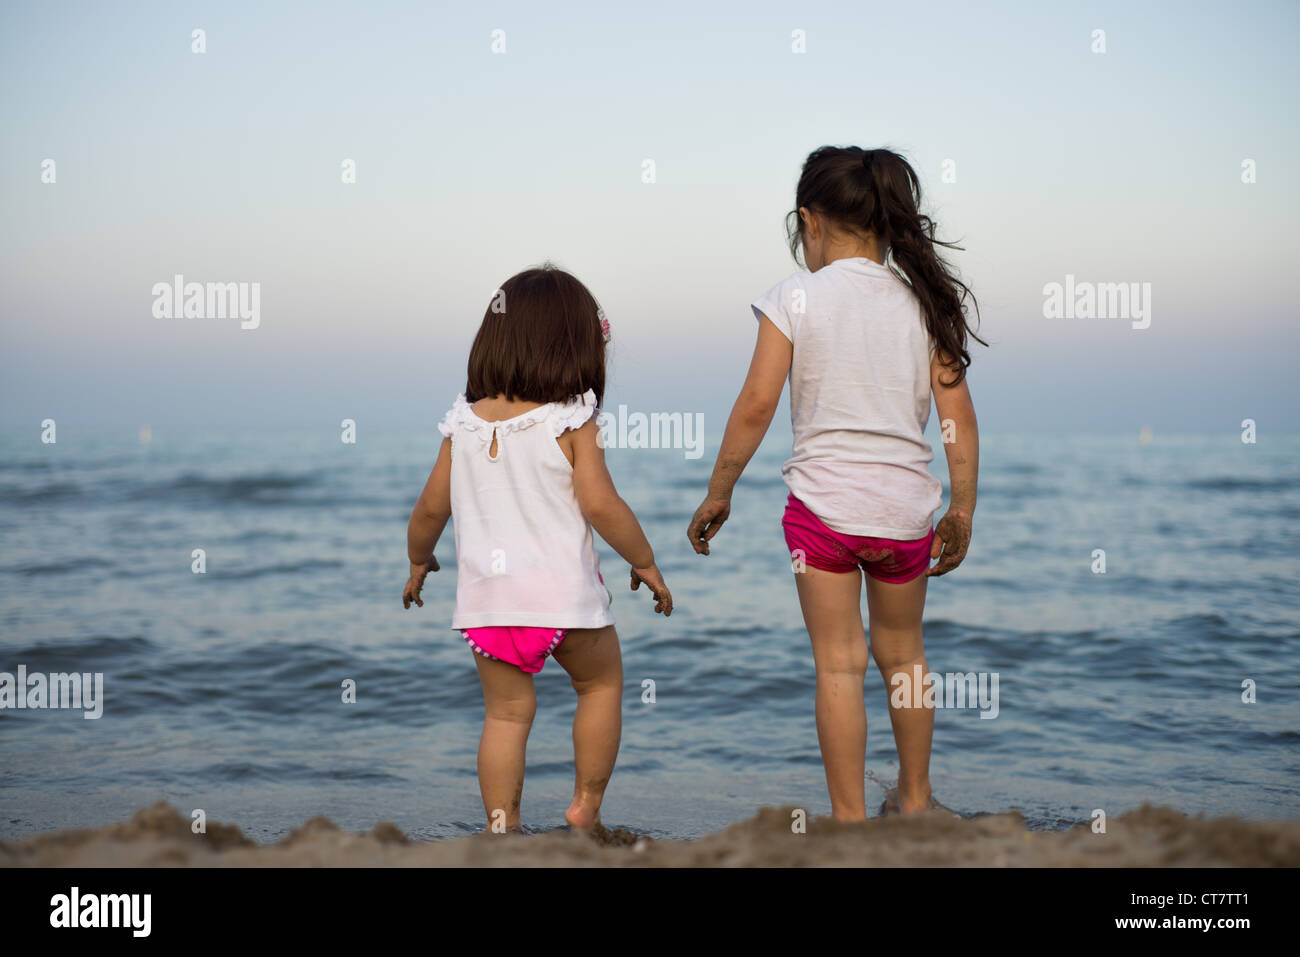 Two girls on a beach looking out across open water. - Stock Image